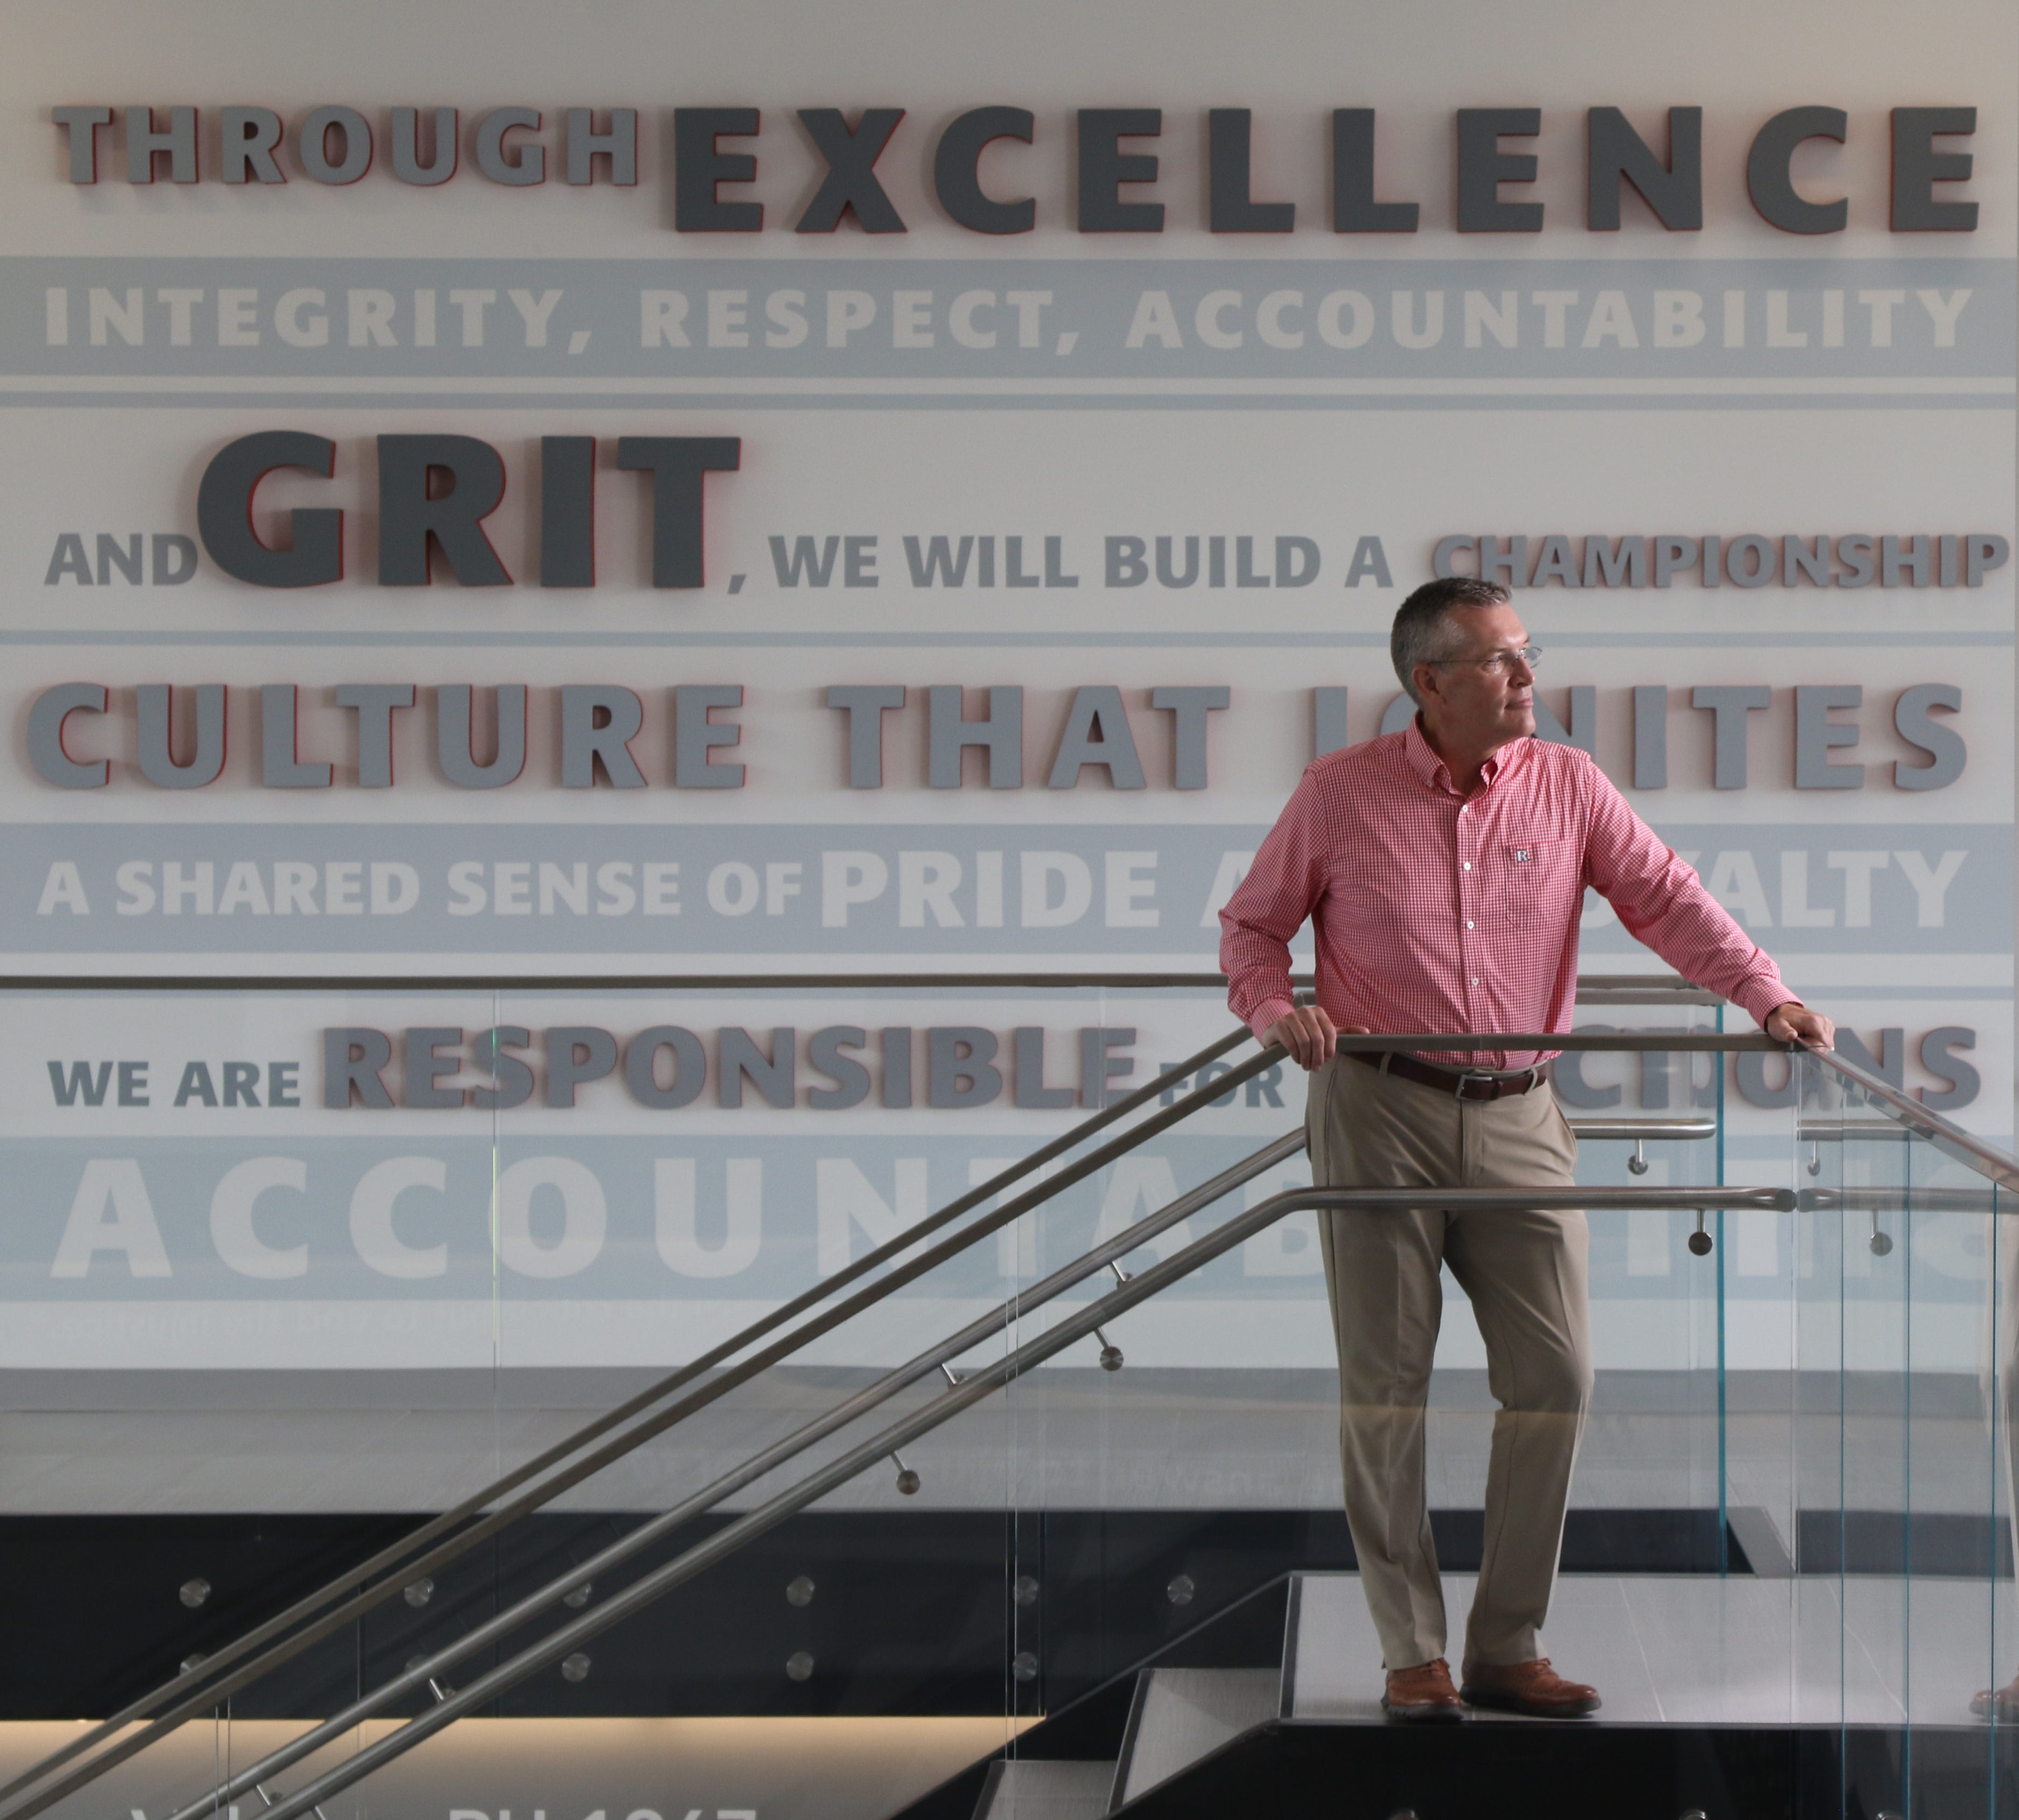 Rutgers Athletic Director Pat Hobbs on the second floor in the lobby of the Gary and Barbara Rodkin Academic Success Center, one of two new athletic facilities at Rutgers University.